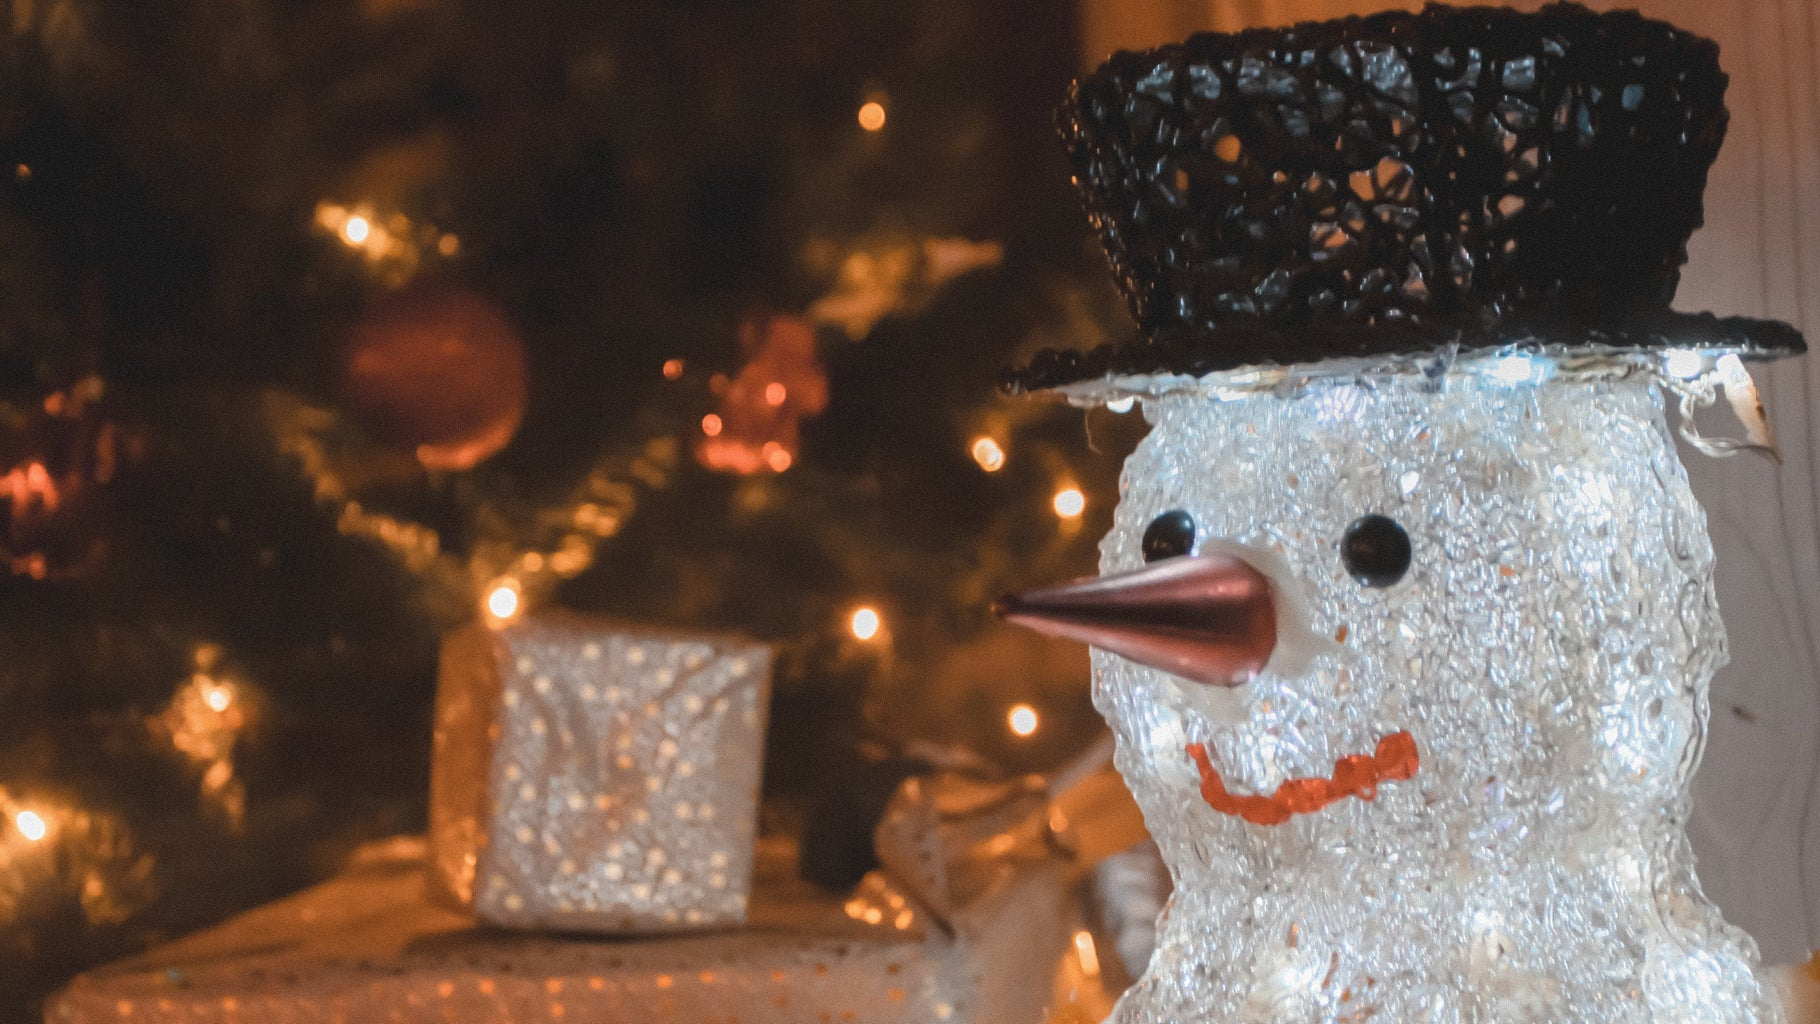 snowman and holiday decorations